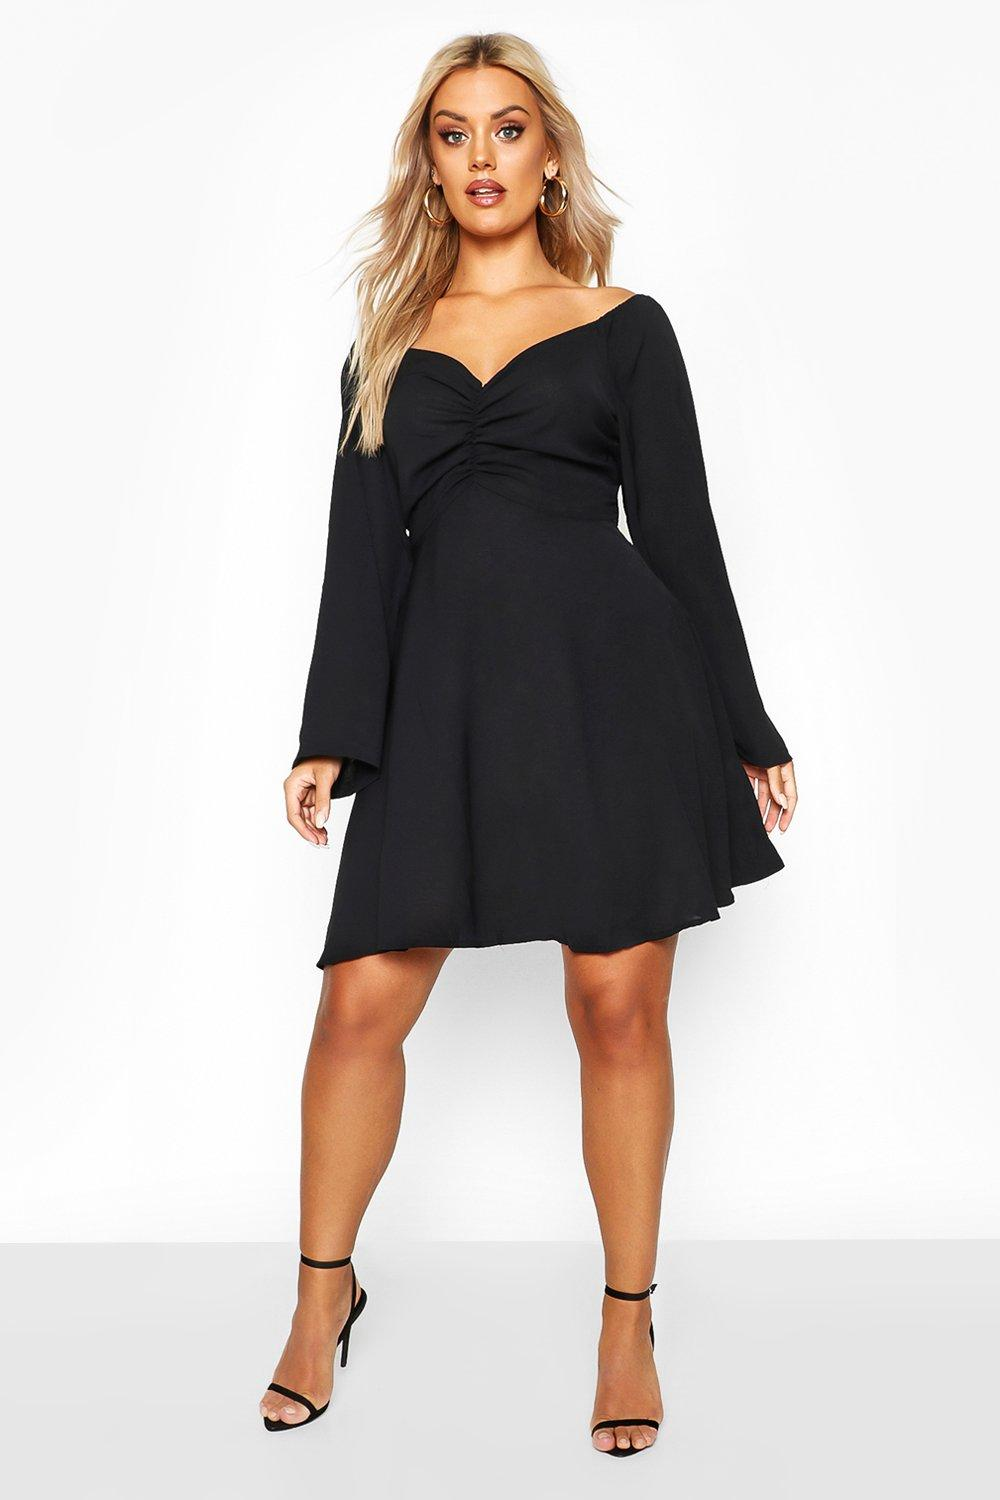 boohoo Womens Plus Puff Sleeve Ruched Detail Skater Dress - Black - 20, Black